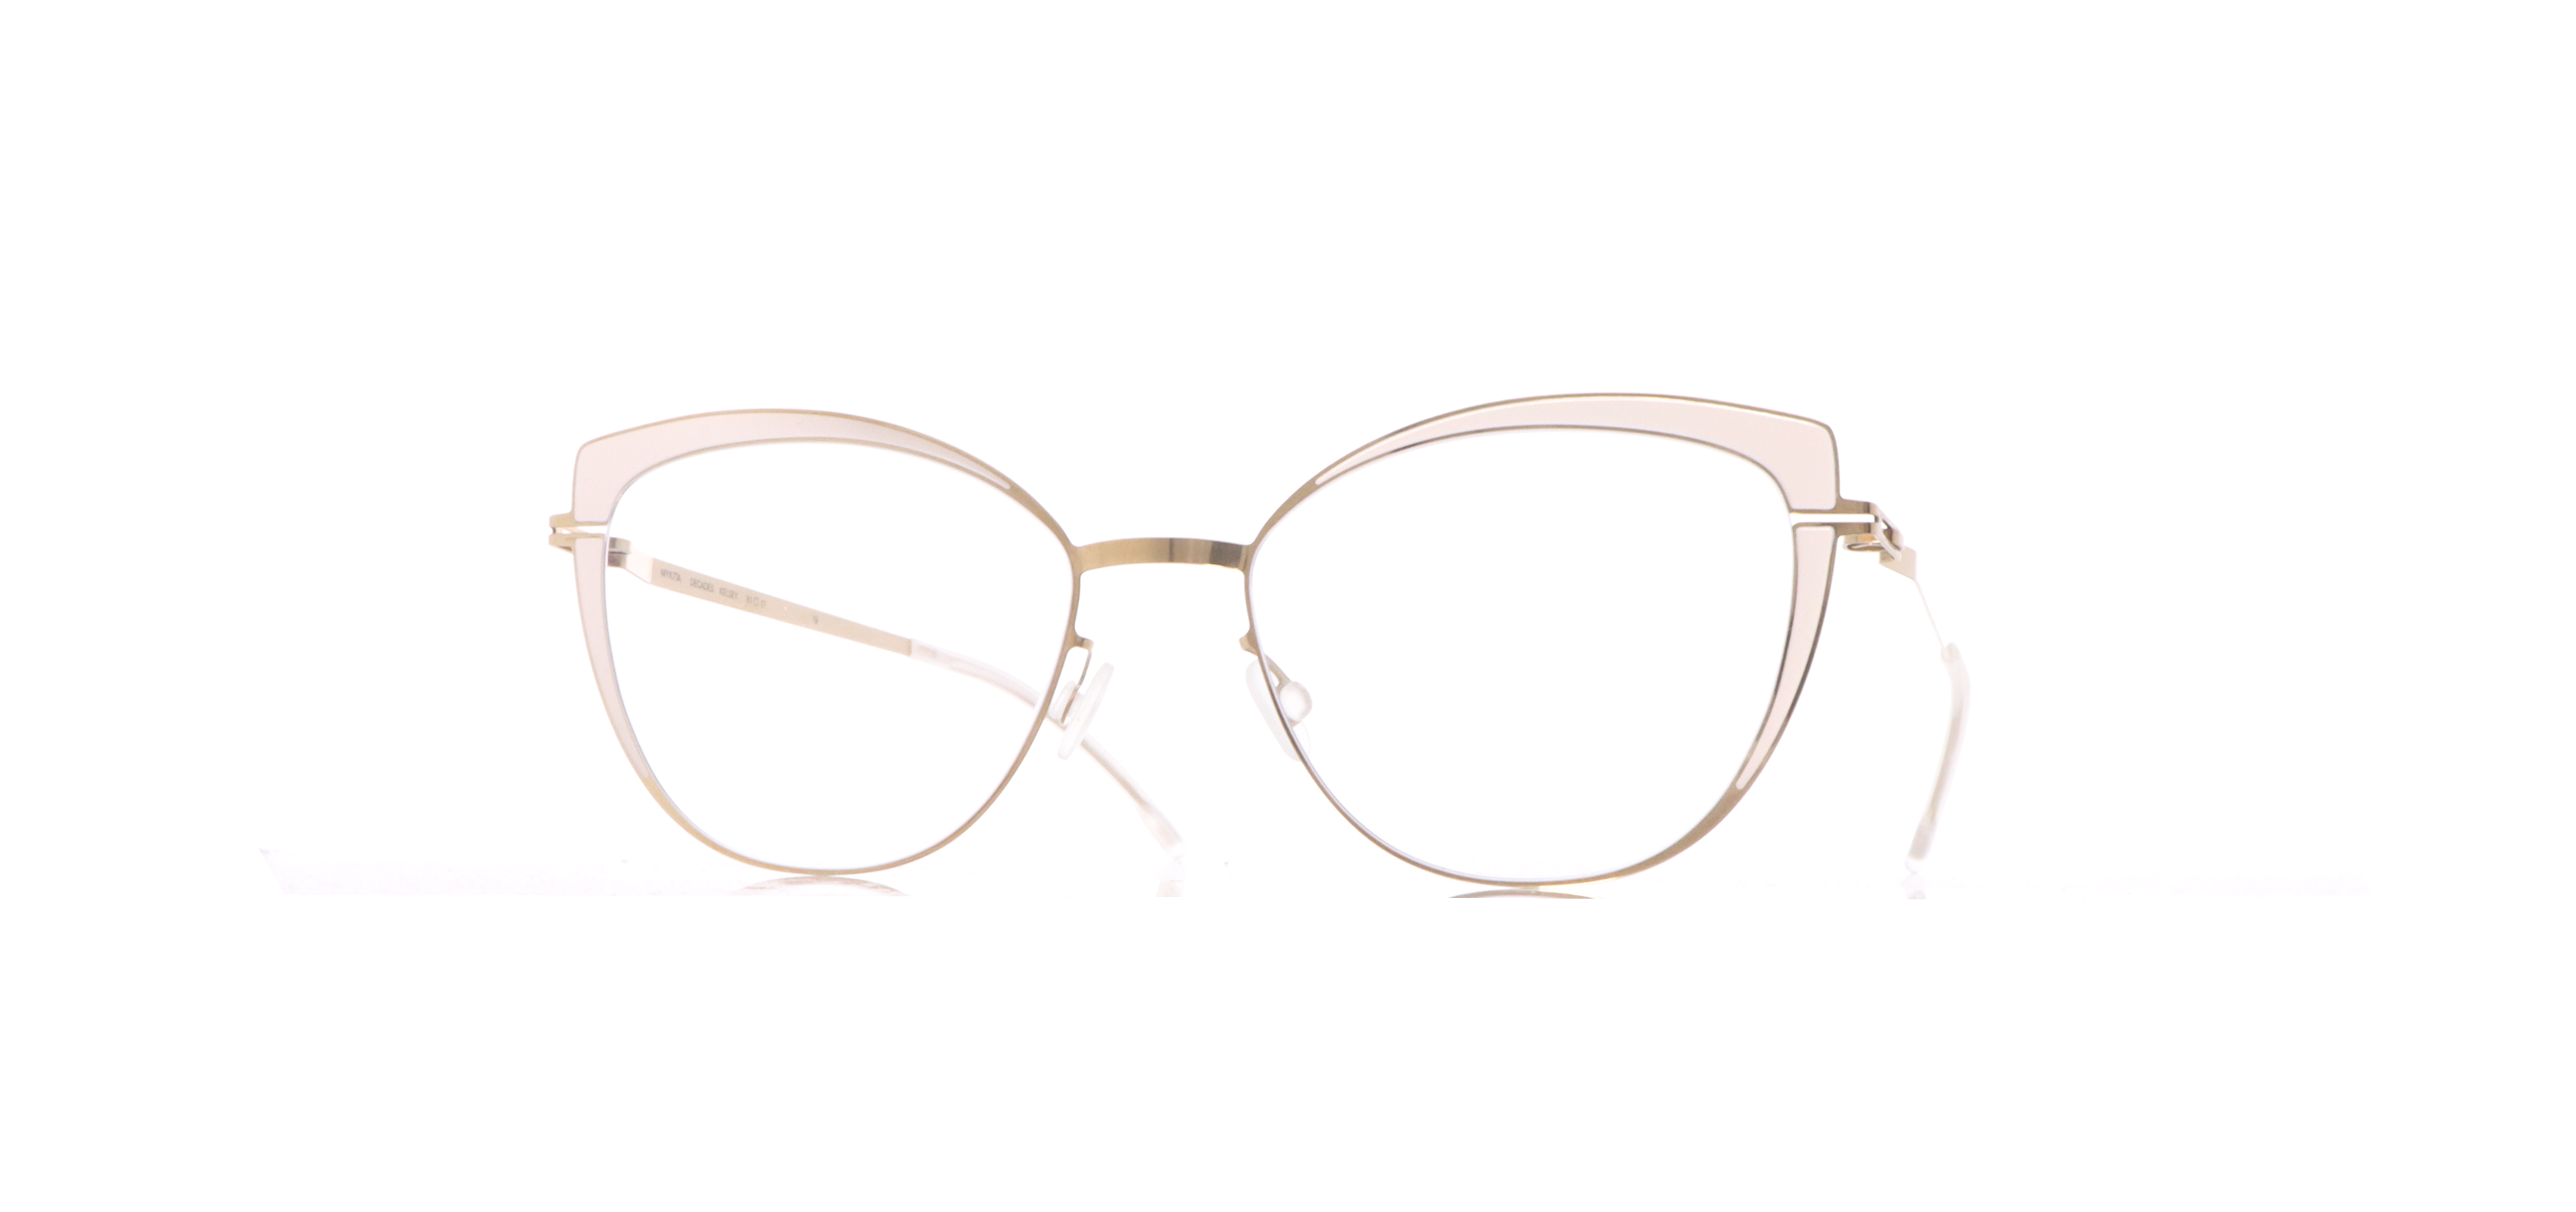 Mykita-Kelsey-Champagne-Gold-Jet-Black-luxury-eyewear-Reimbold-Eye-Group-North-Atlanta-GA-eye-doctor-exams